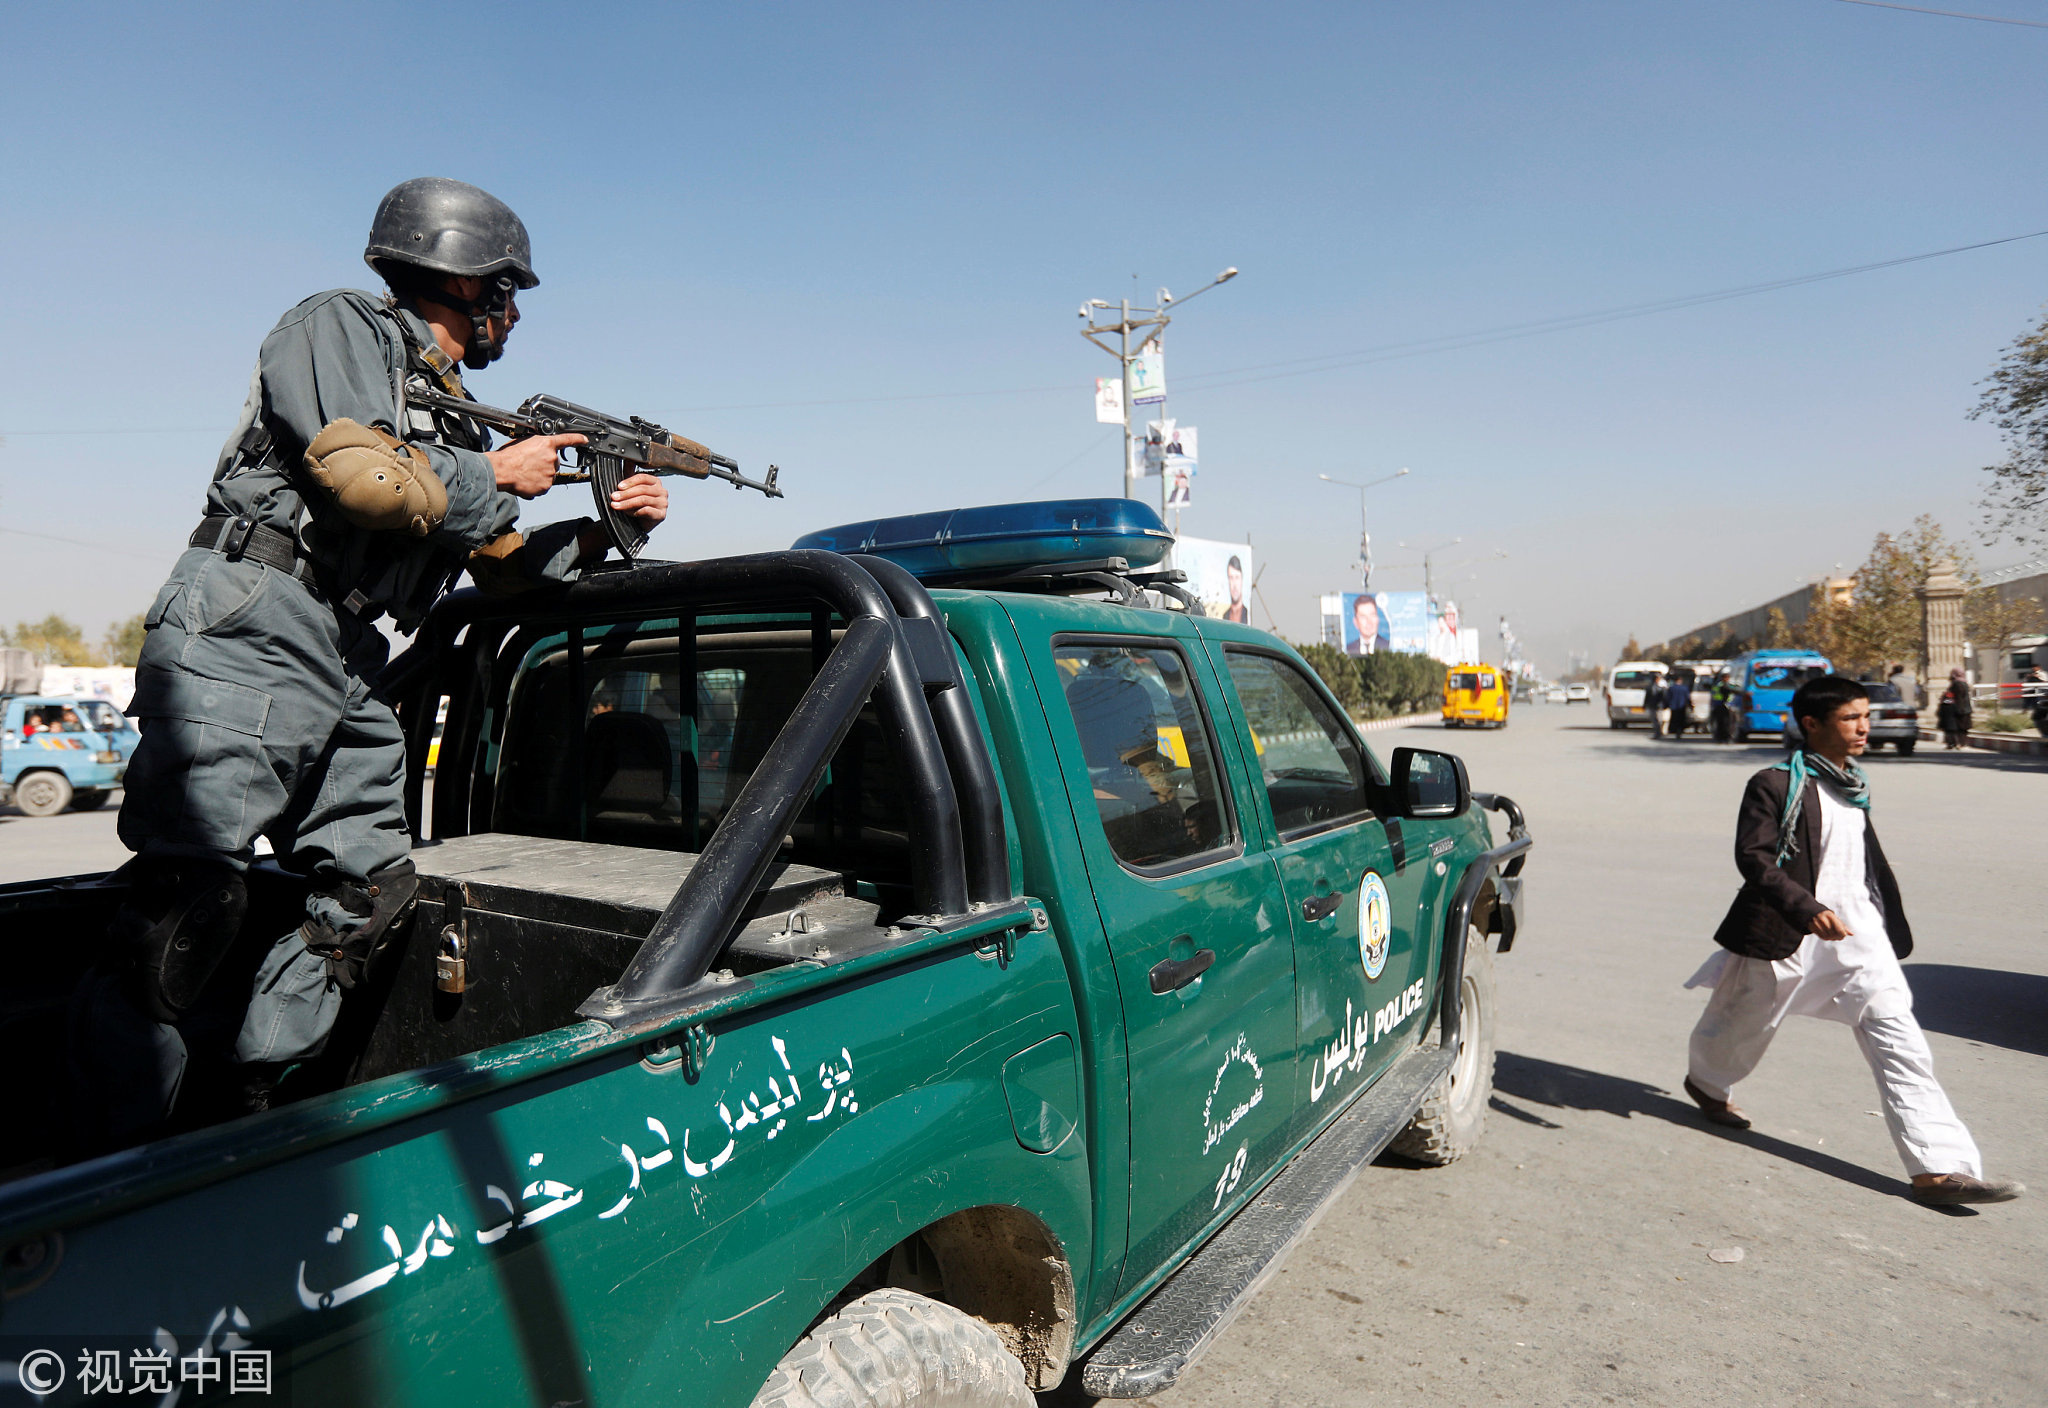 Afghanistan faces challenges ahead of long-delayed